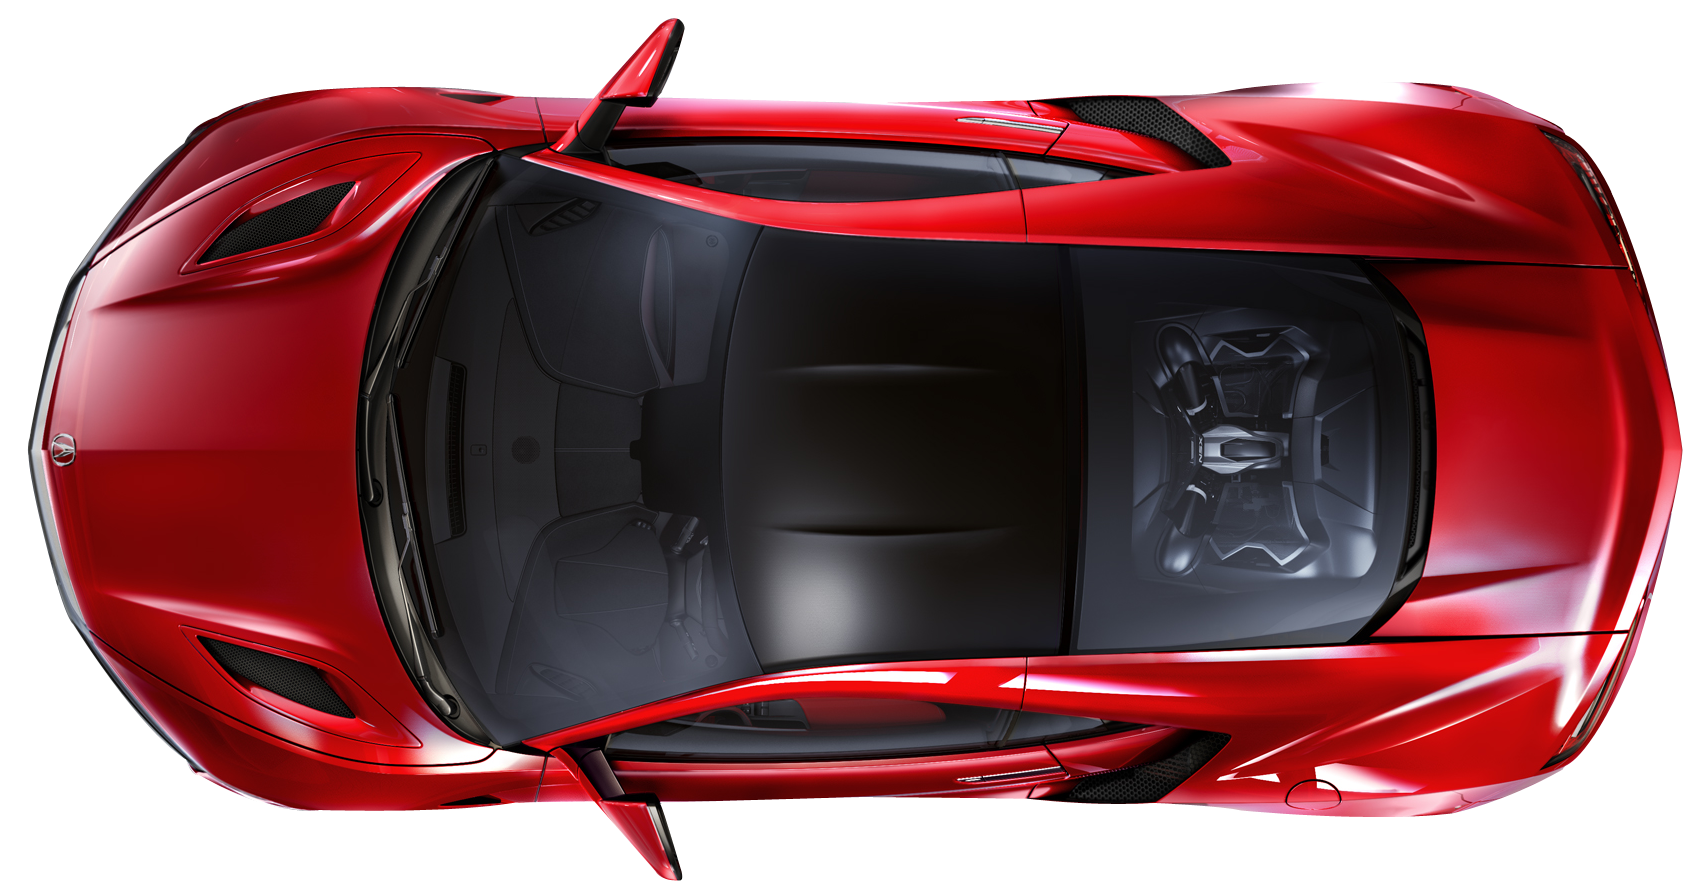 Download Car Top View Png Image For Free Nsx Acura Nsx Honda Nsx 2015